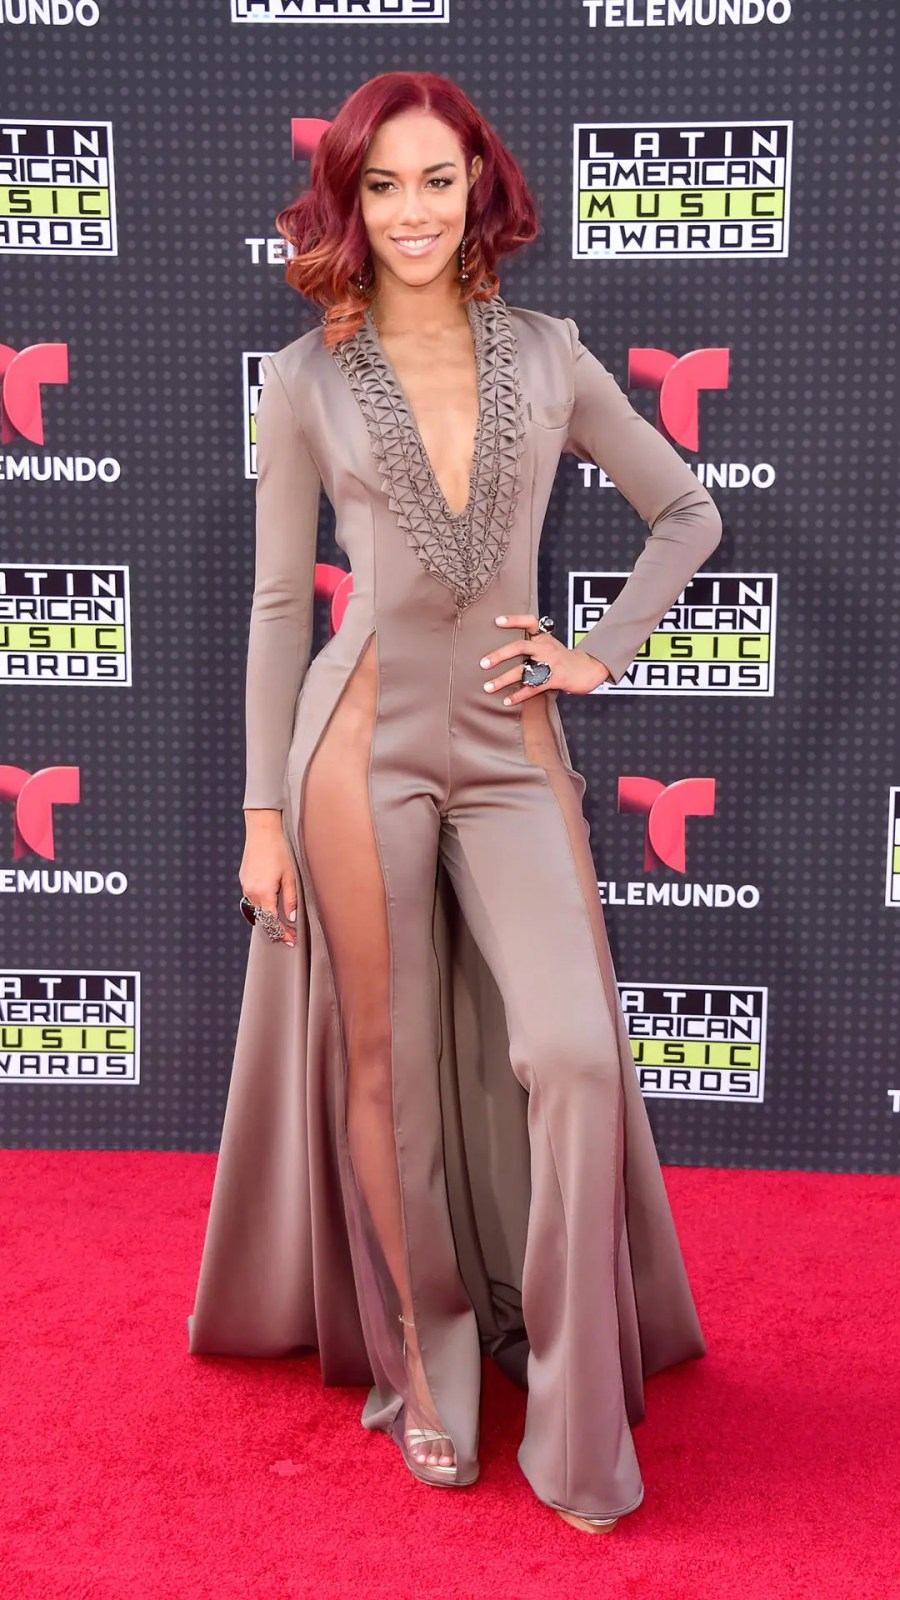 HOLLYWOOD, CA - OCTOBER 08: Singer Natalie La Rose attends Telemundo's Latin American Music Awards at the Dolby Theatre on October 8, 2015 in Hollywood, California. (Photo by Frazer Harrison/Getty Images)